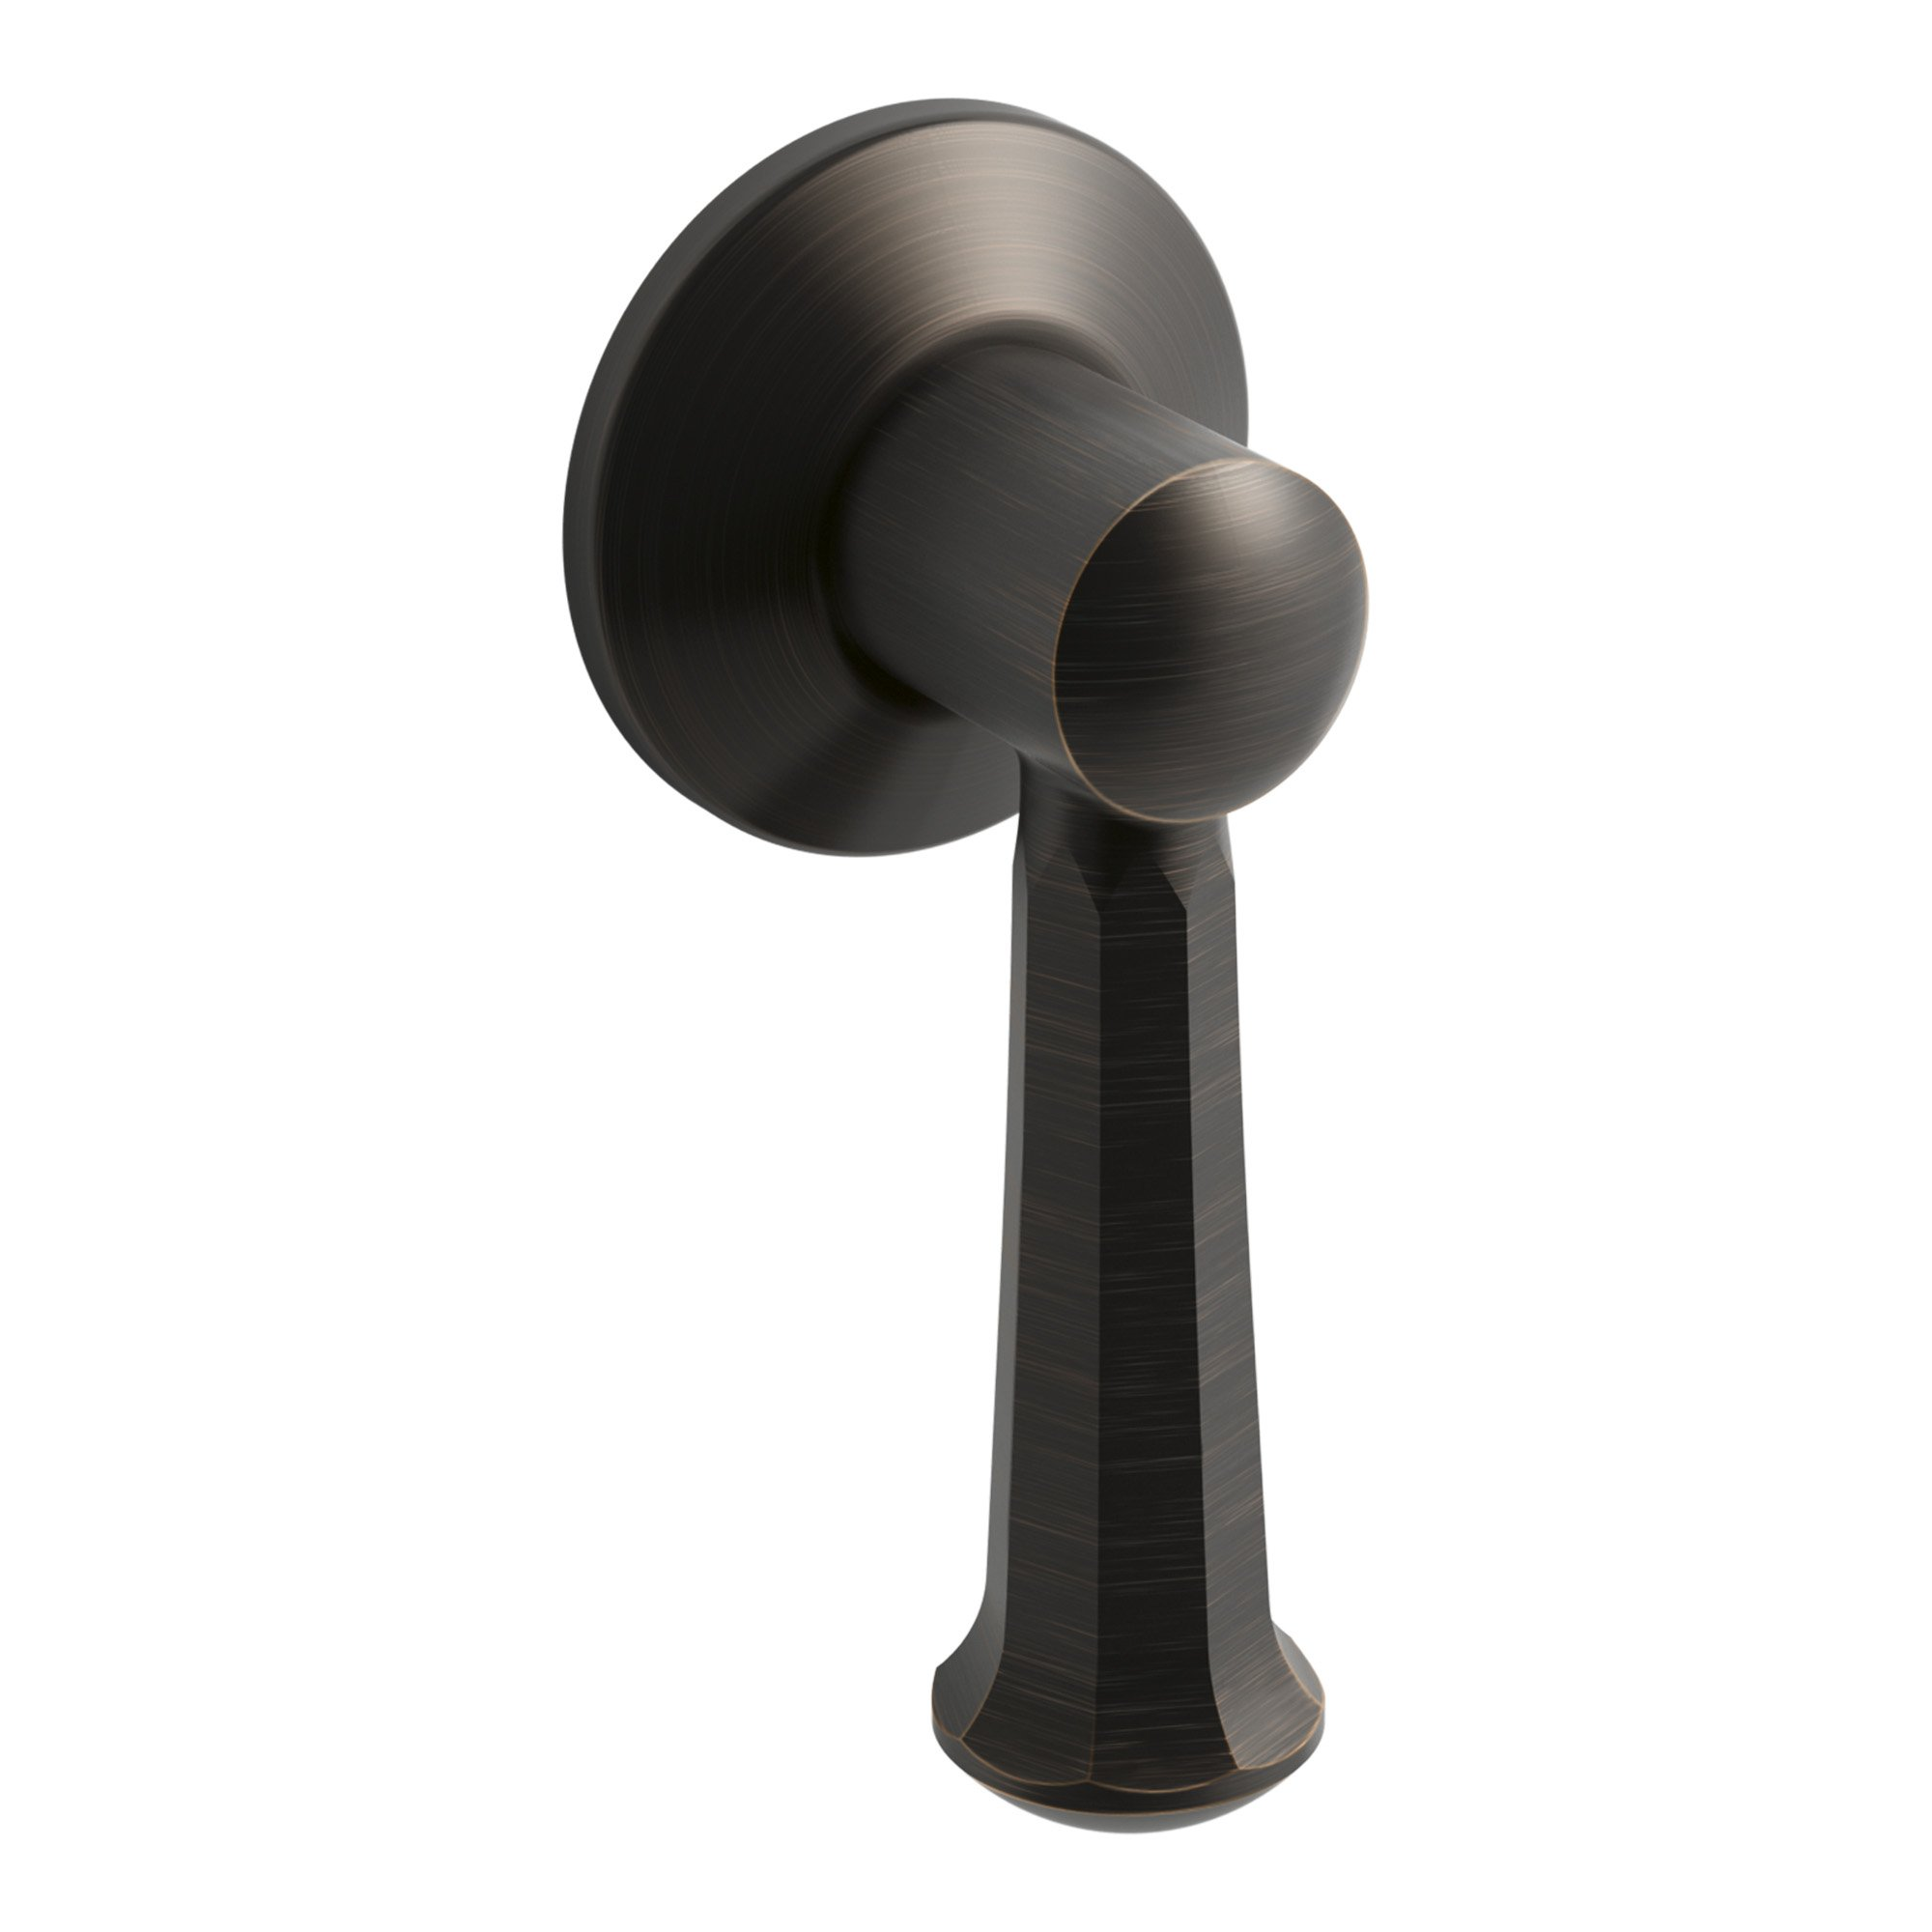 KOHLER K-502-2BZ Memoirs Toilet Trip Lever, Oil-Rubbed Bronze